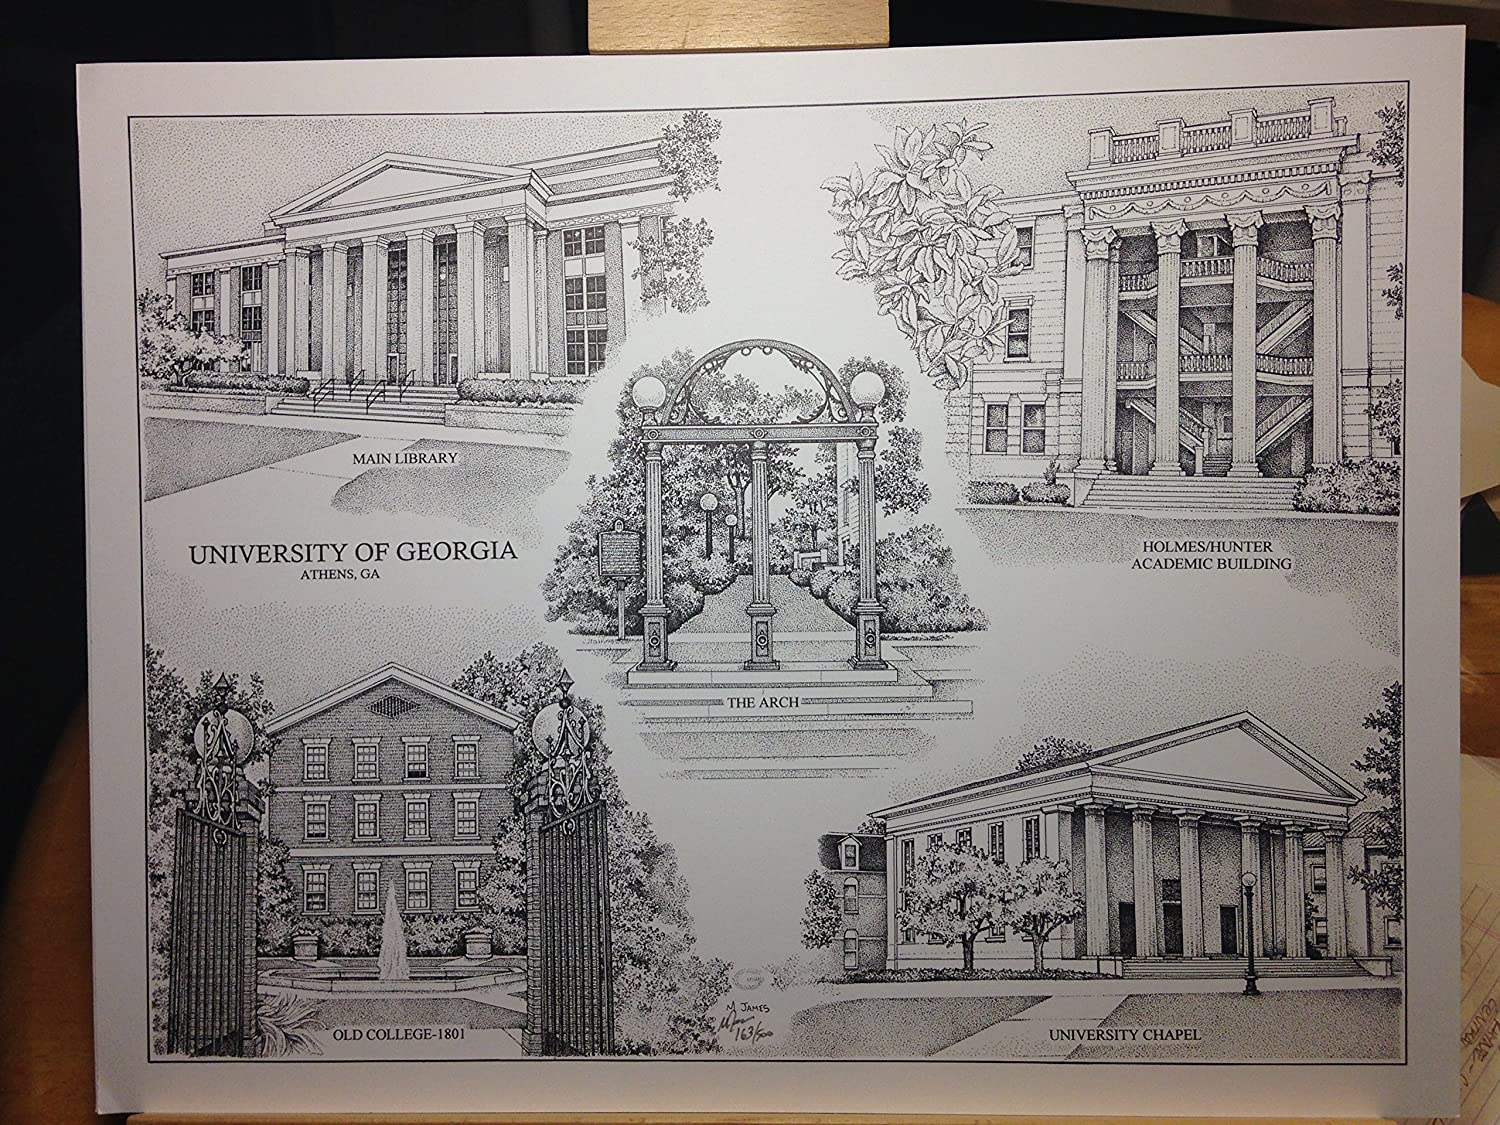 University of Georgia 14x18 pen and ink collage print